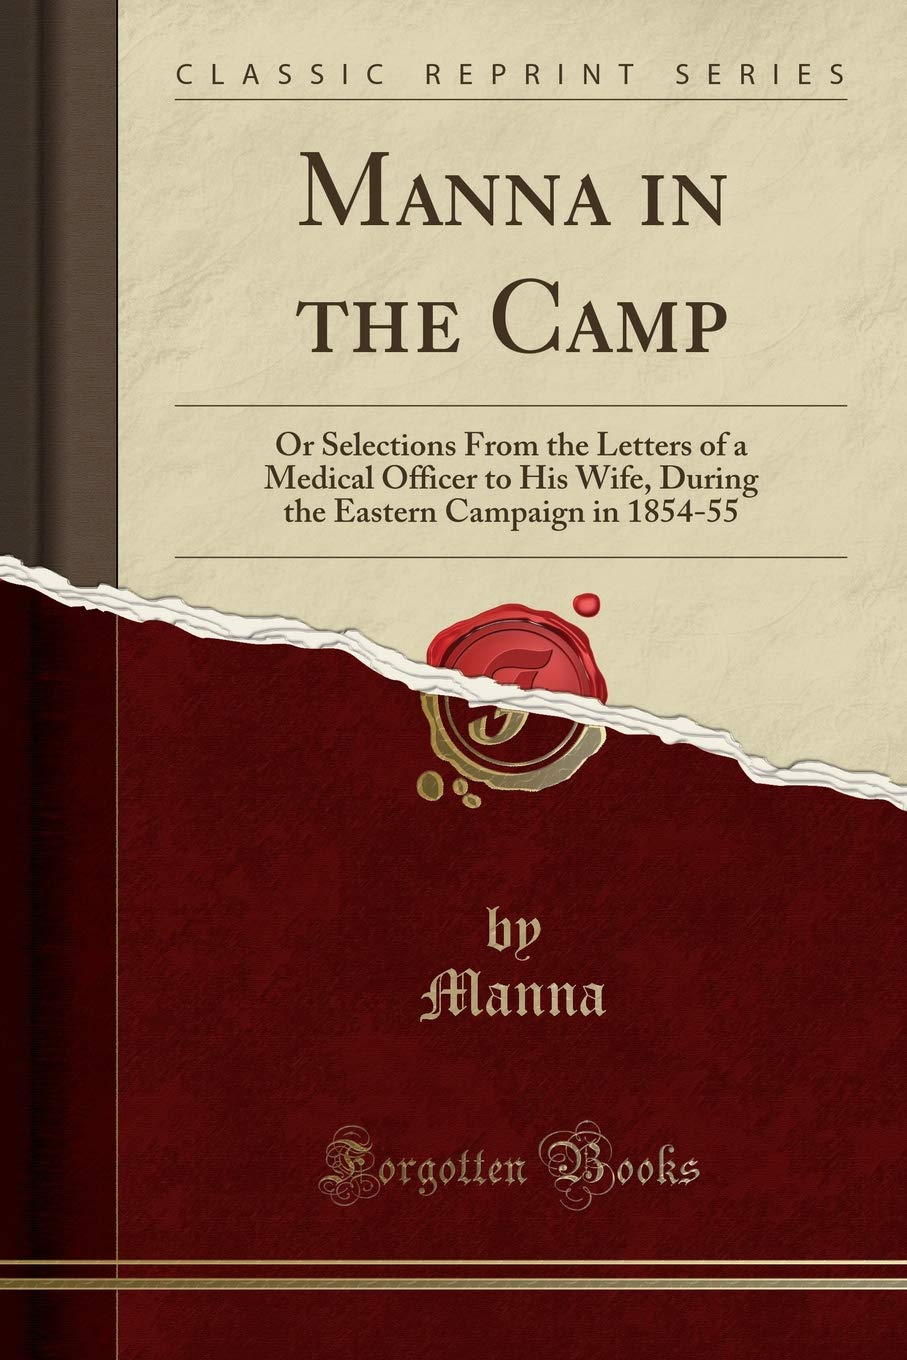 Download Manna in the Camp: Or Selections From the Letters of a Medical Officer to His Wife, During the Eastern Campaign in 1854-55 (Classic Reprint) PDF